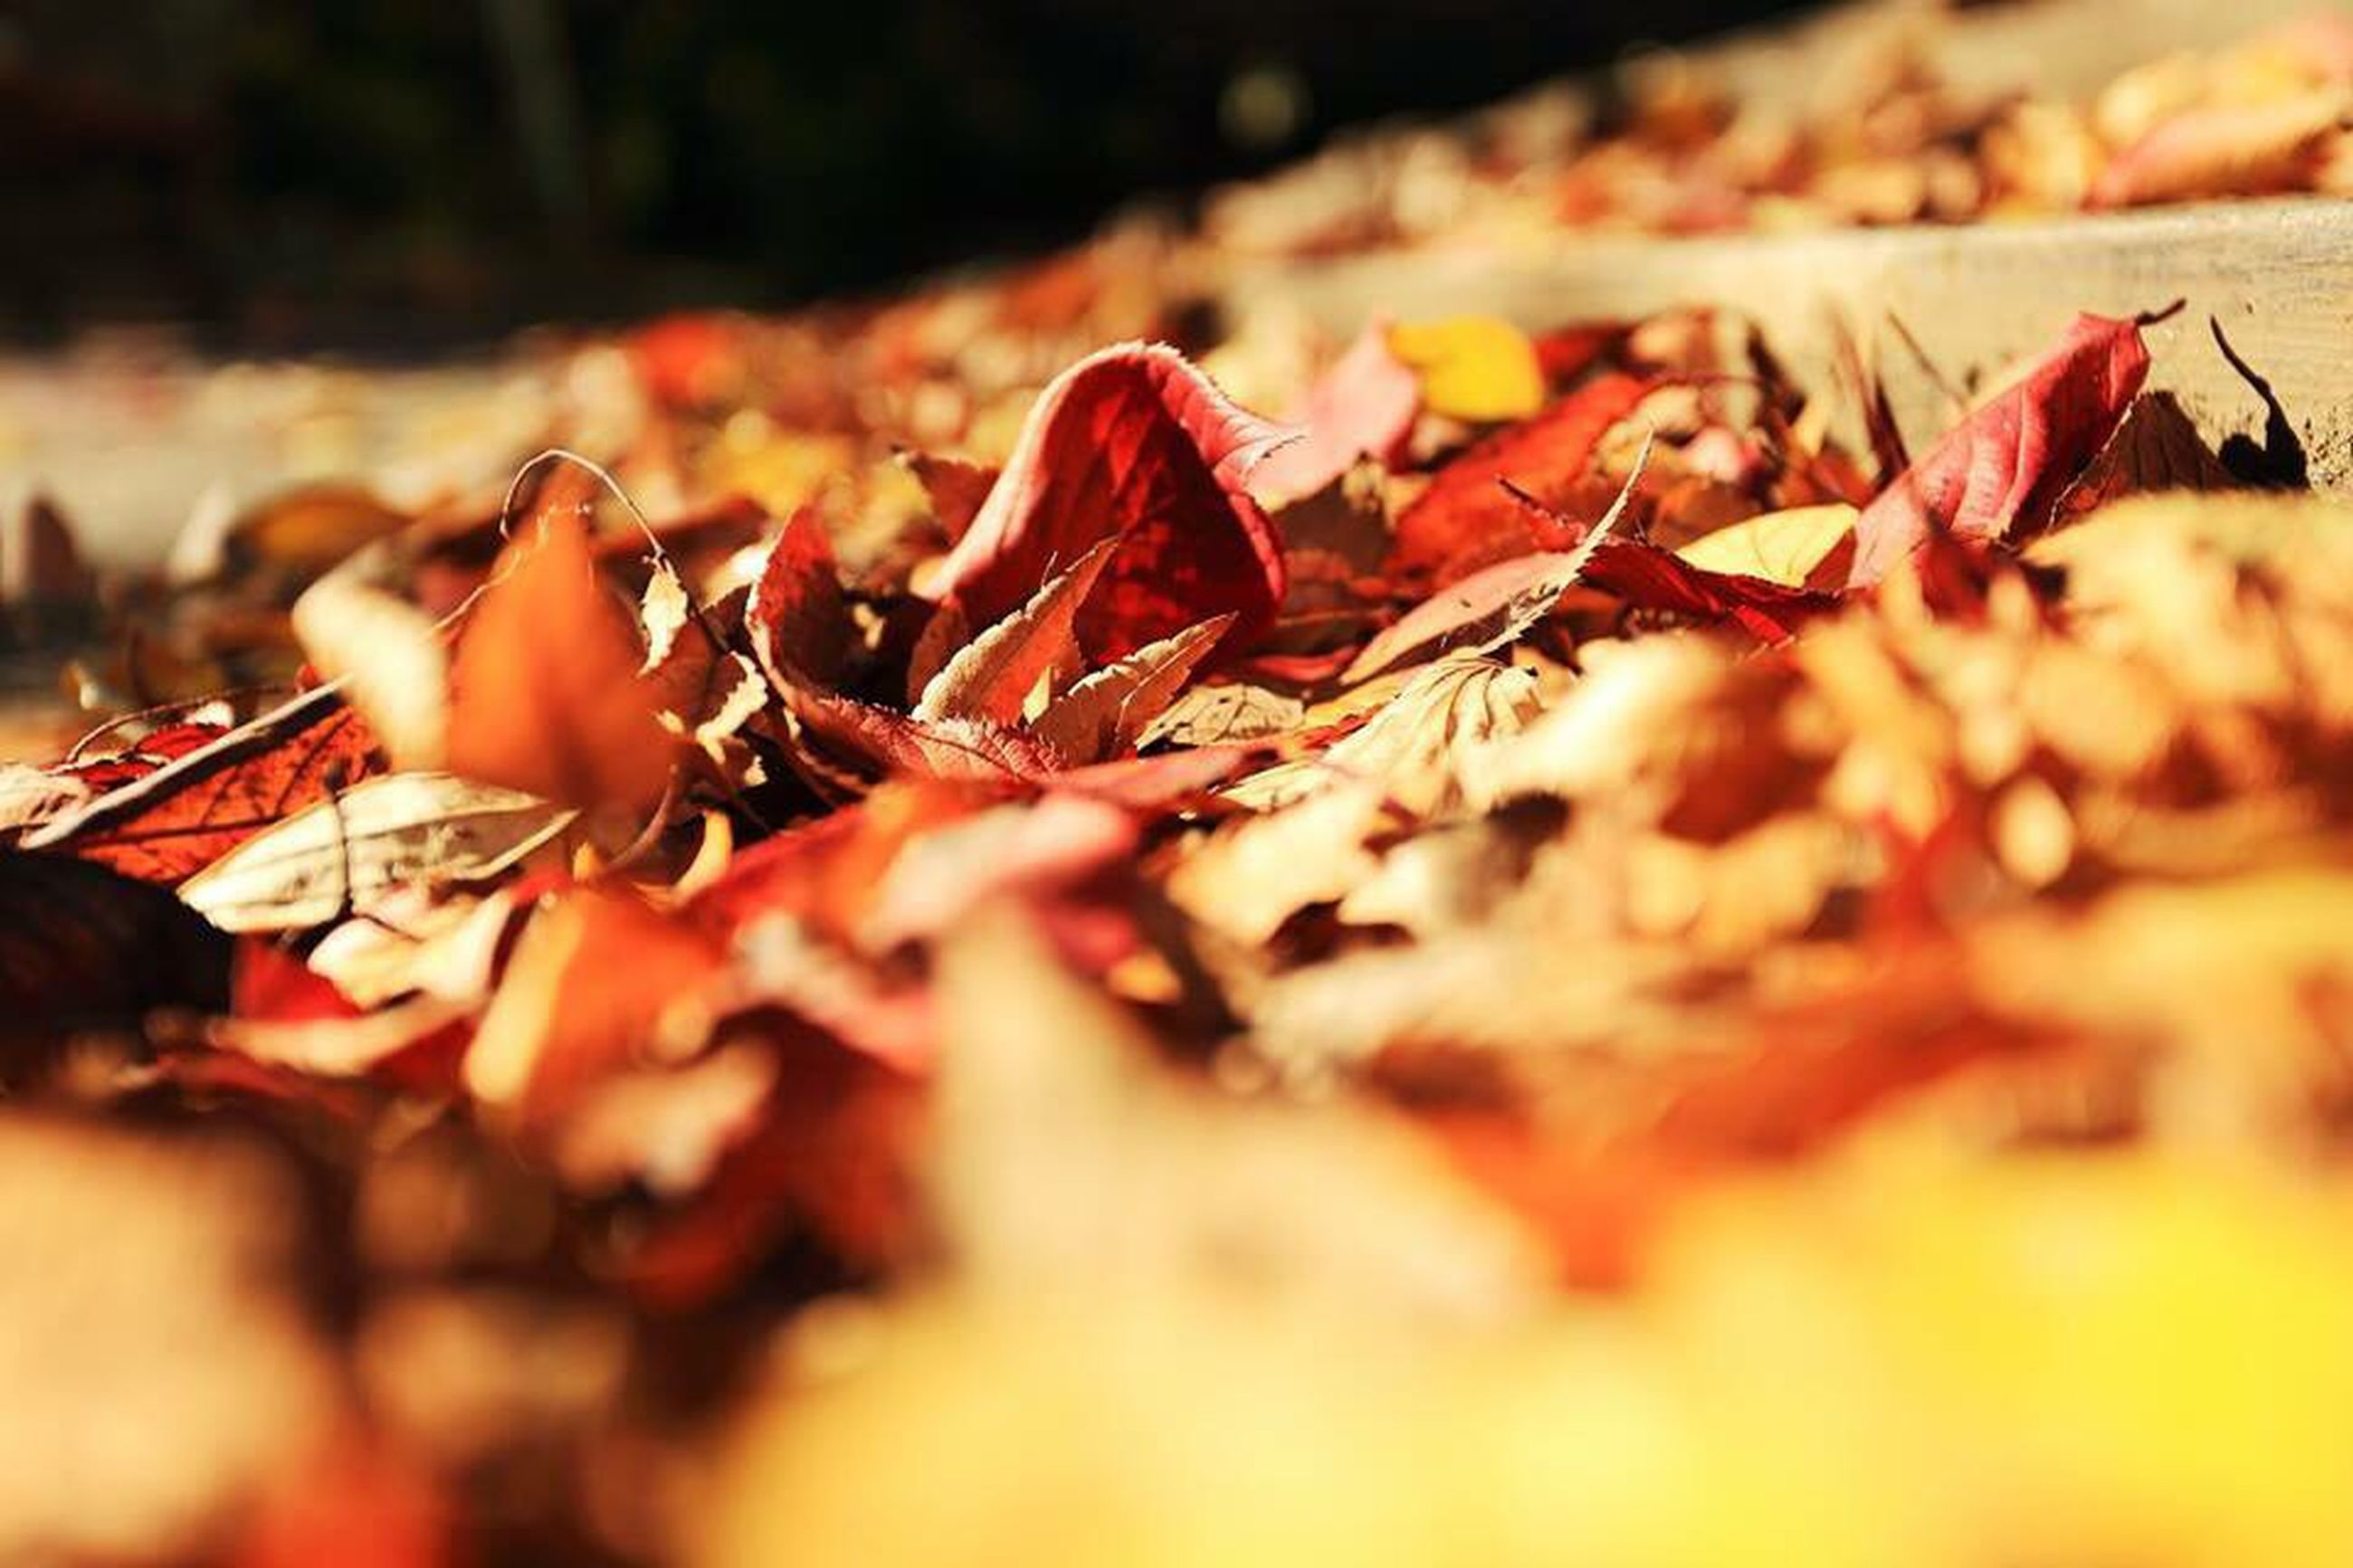 autumn, leaf, change, dry, selective focus, leaves, season, close-up, focus on foreground, fallen, abundance, orange color, nature, no people, day, outdoors, large group of objects, fall, surface level, maple leaf